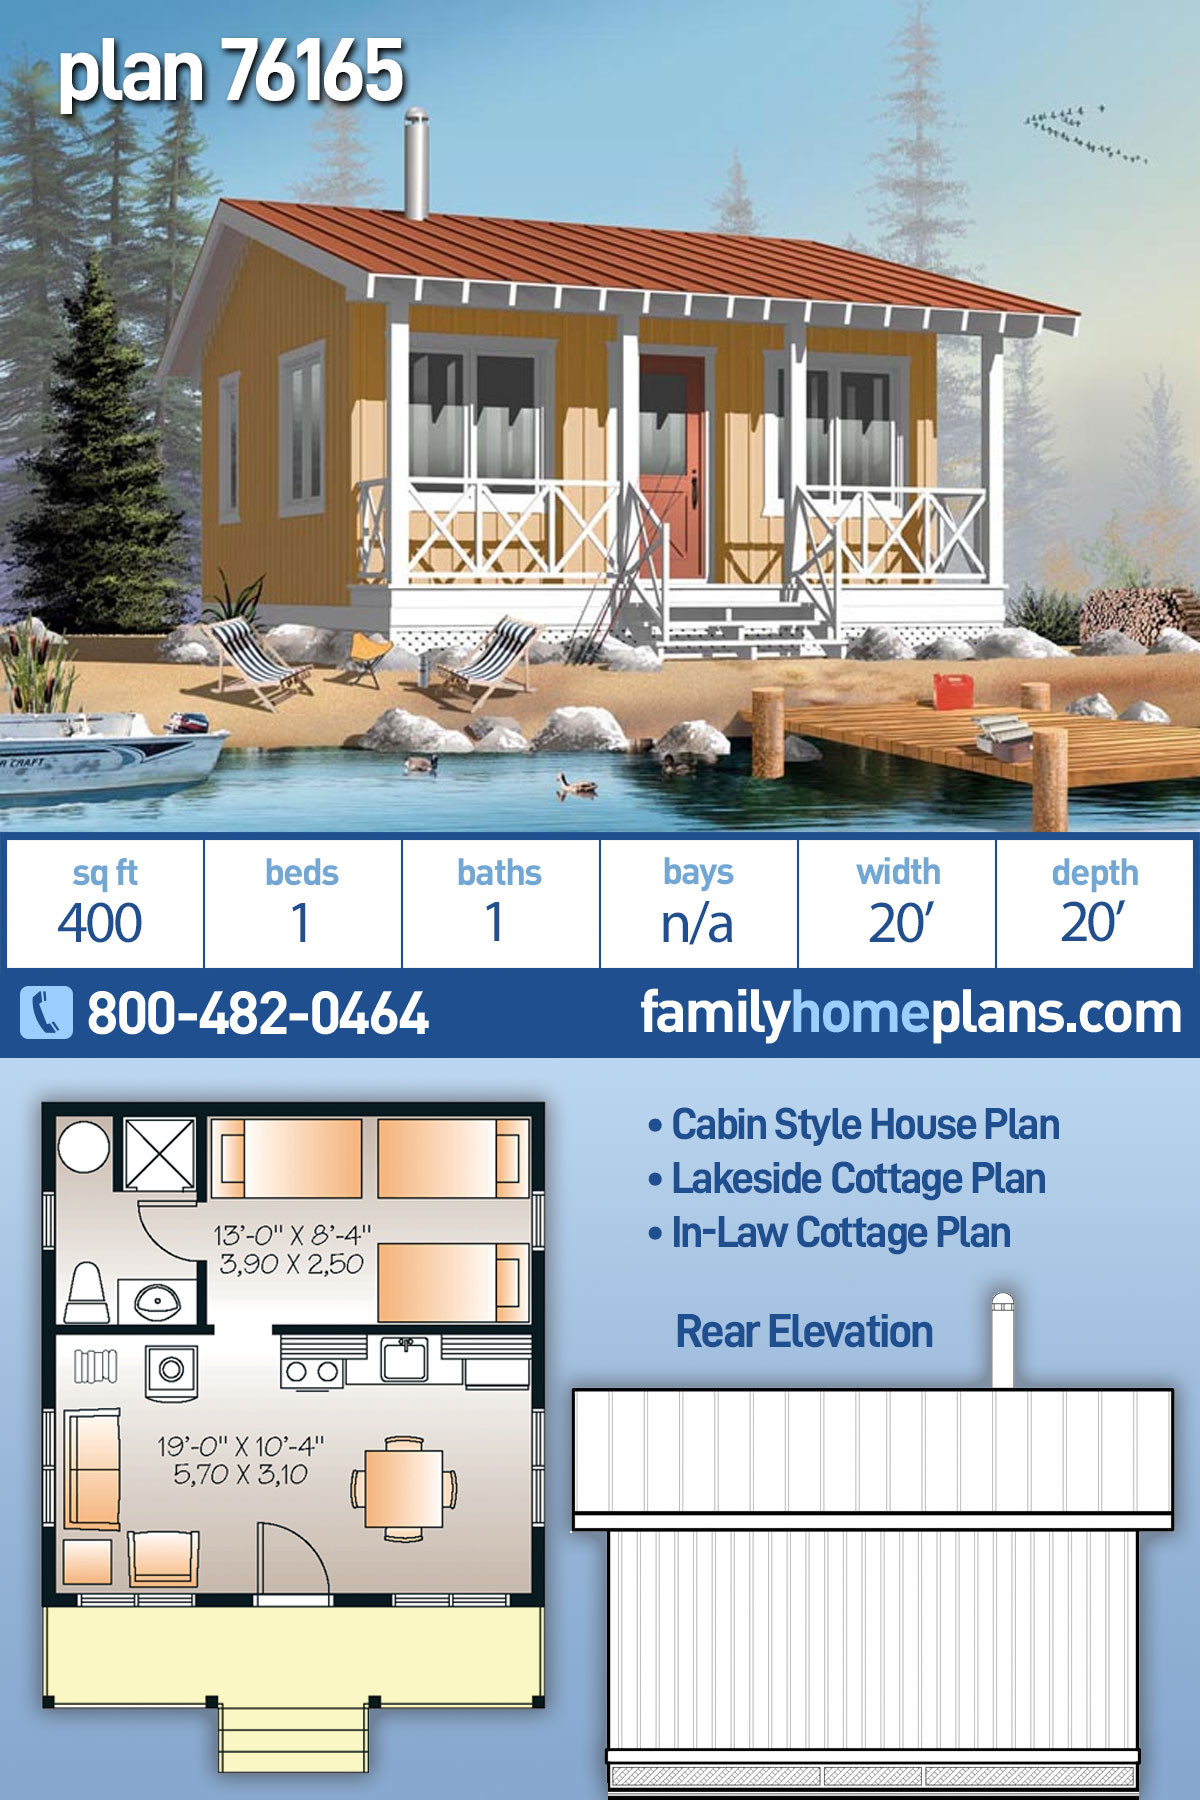 Cabin House Plan 76165 with 1 Beds, 1 Baths